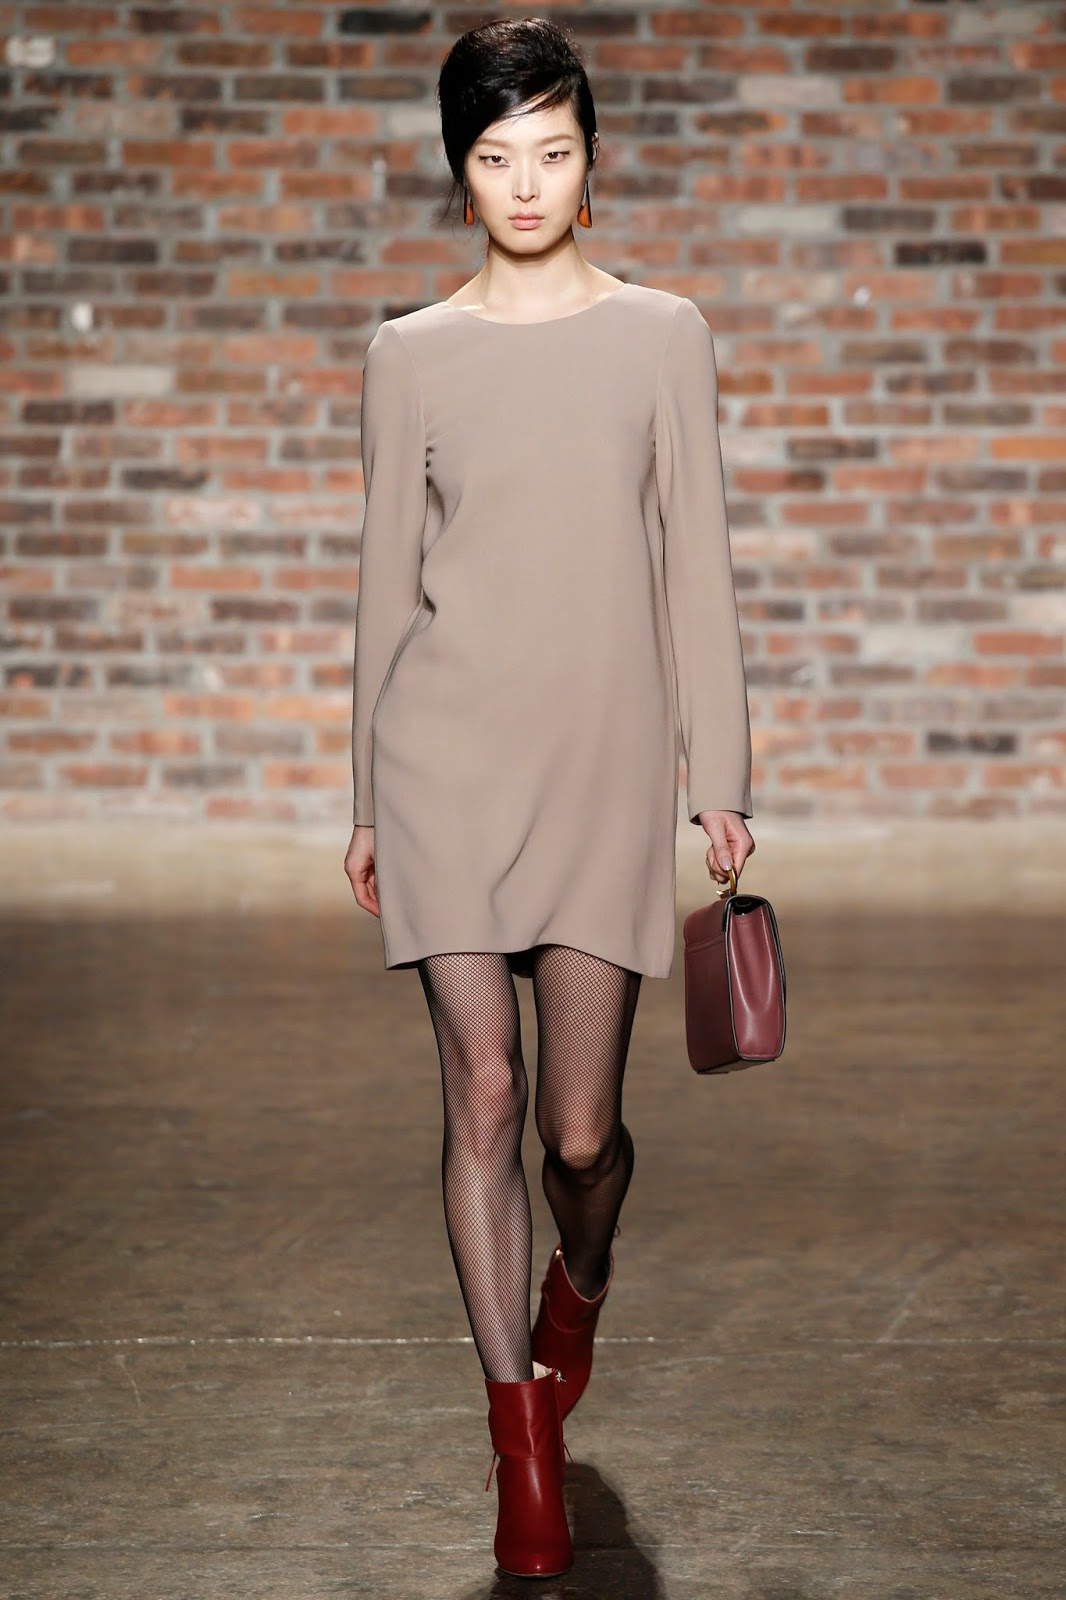 Miayet Fall/Winter 2016, New York Fashion Week, NYFW best collections via www.fashionedbylove.co.uk